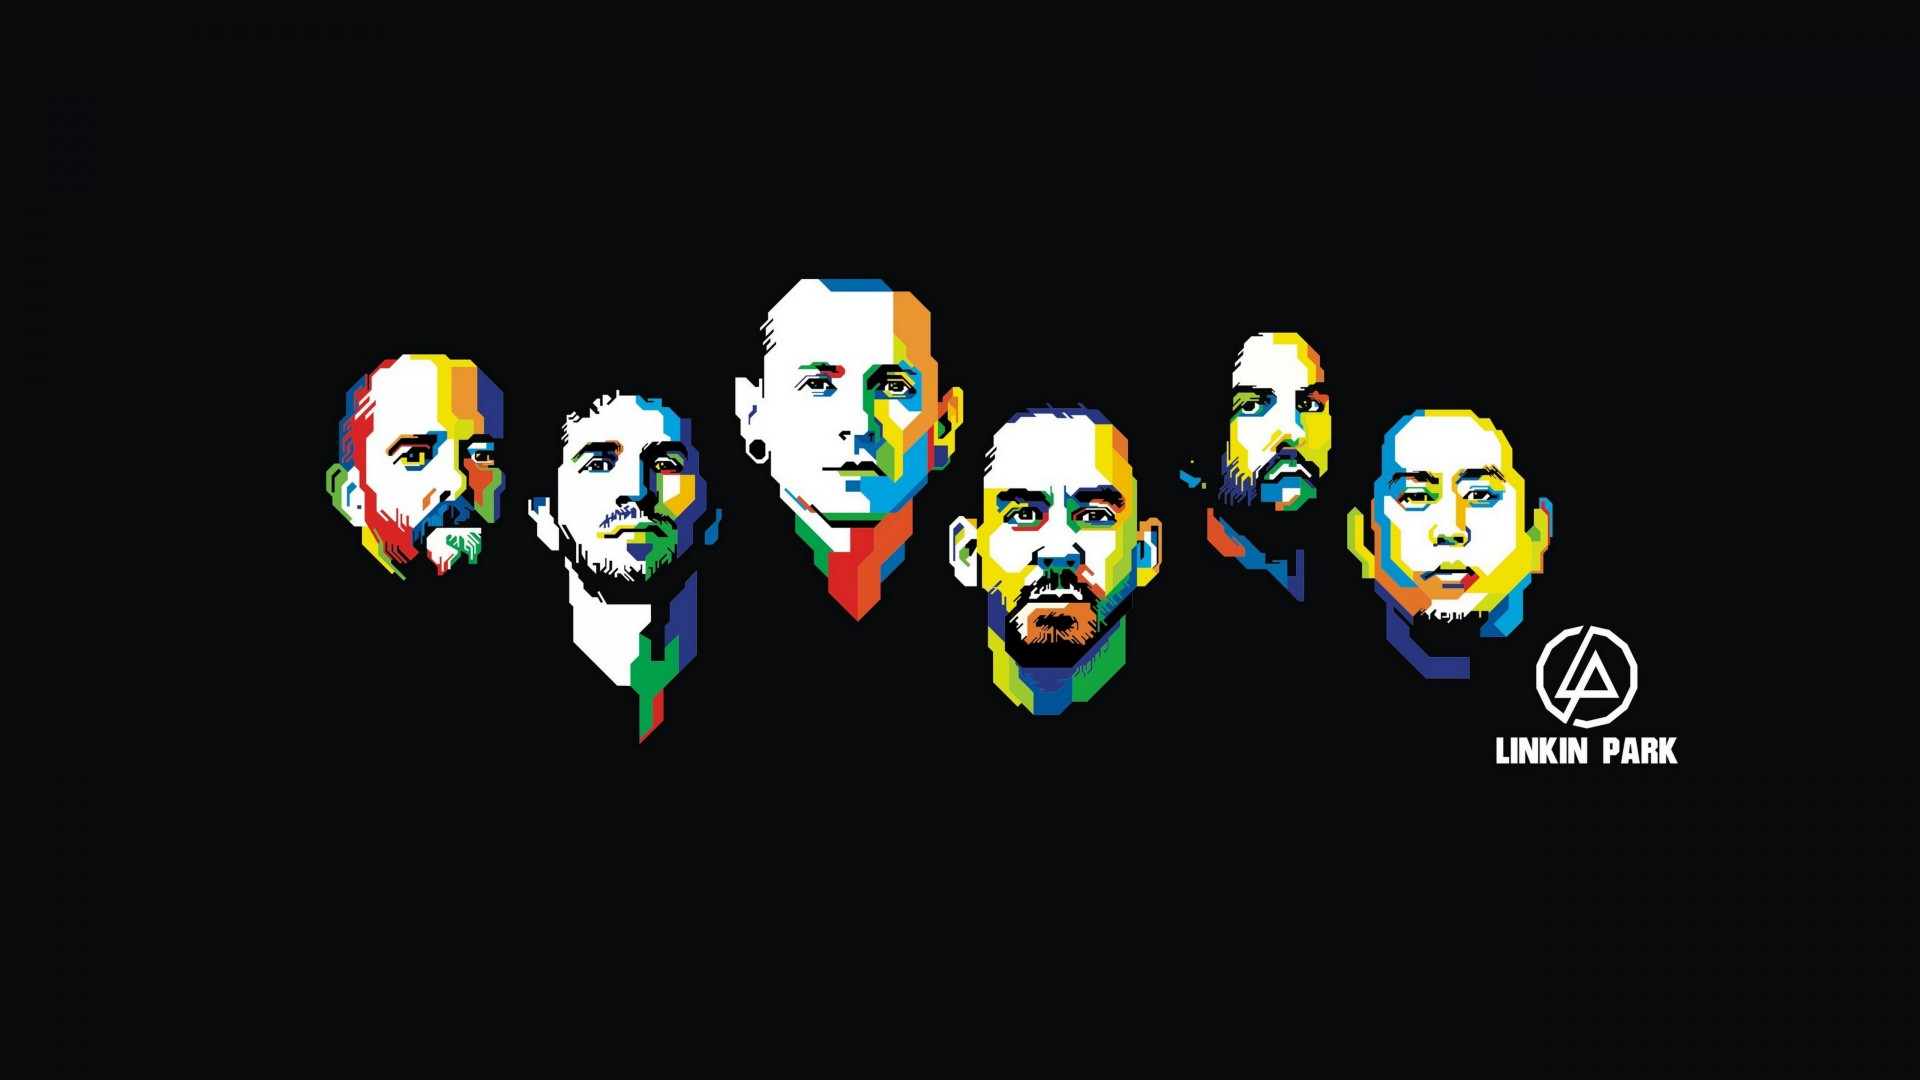 Top 10 3d Wallpapers For Android Linkin Park 5k Wallpapers Hd Wallpapers Id 24216